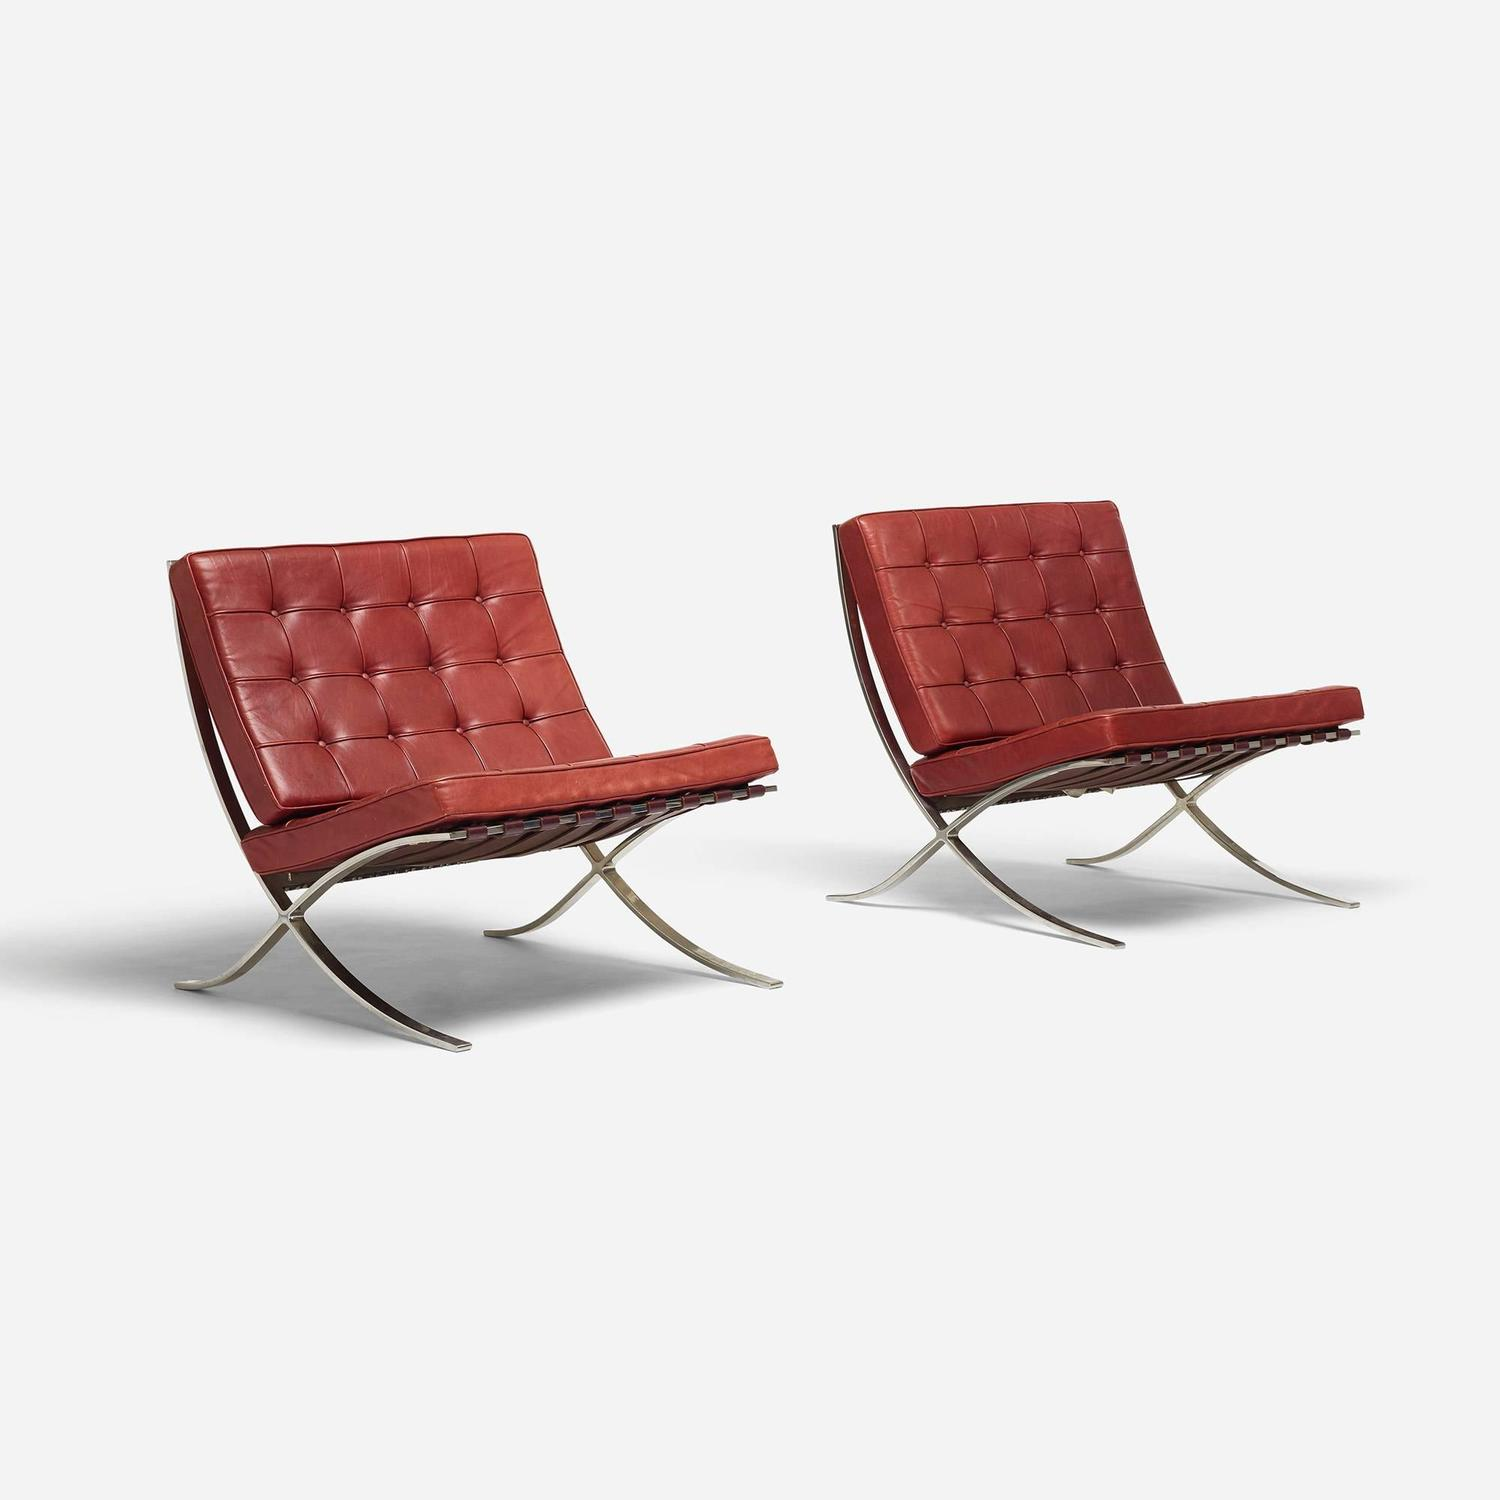 barcelona chairs for sale ikea glider rocker chair pair of by ludwig mies van der rohe